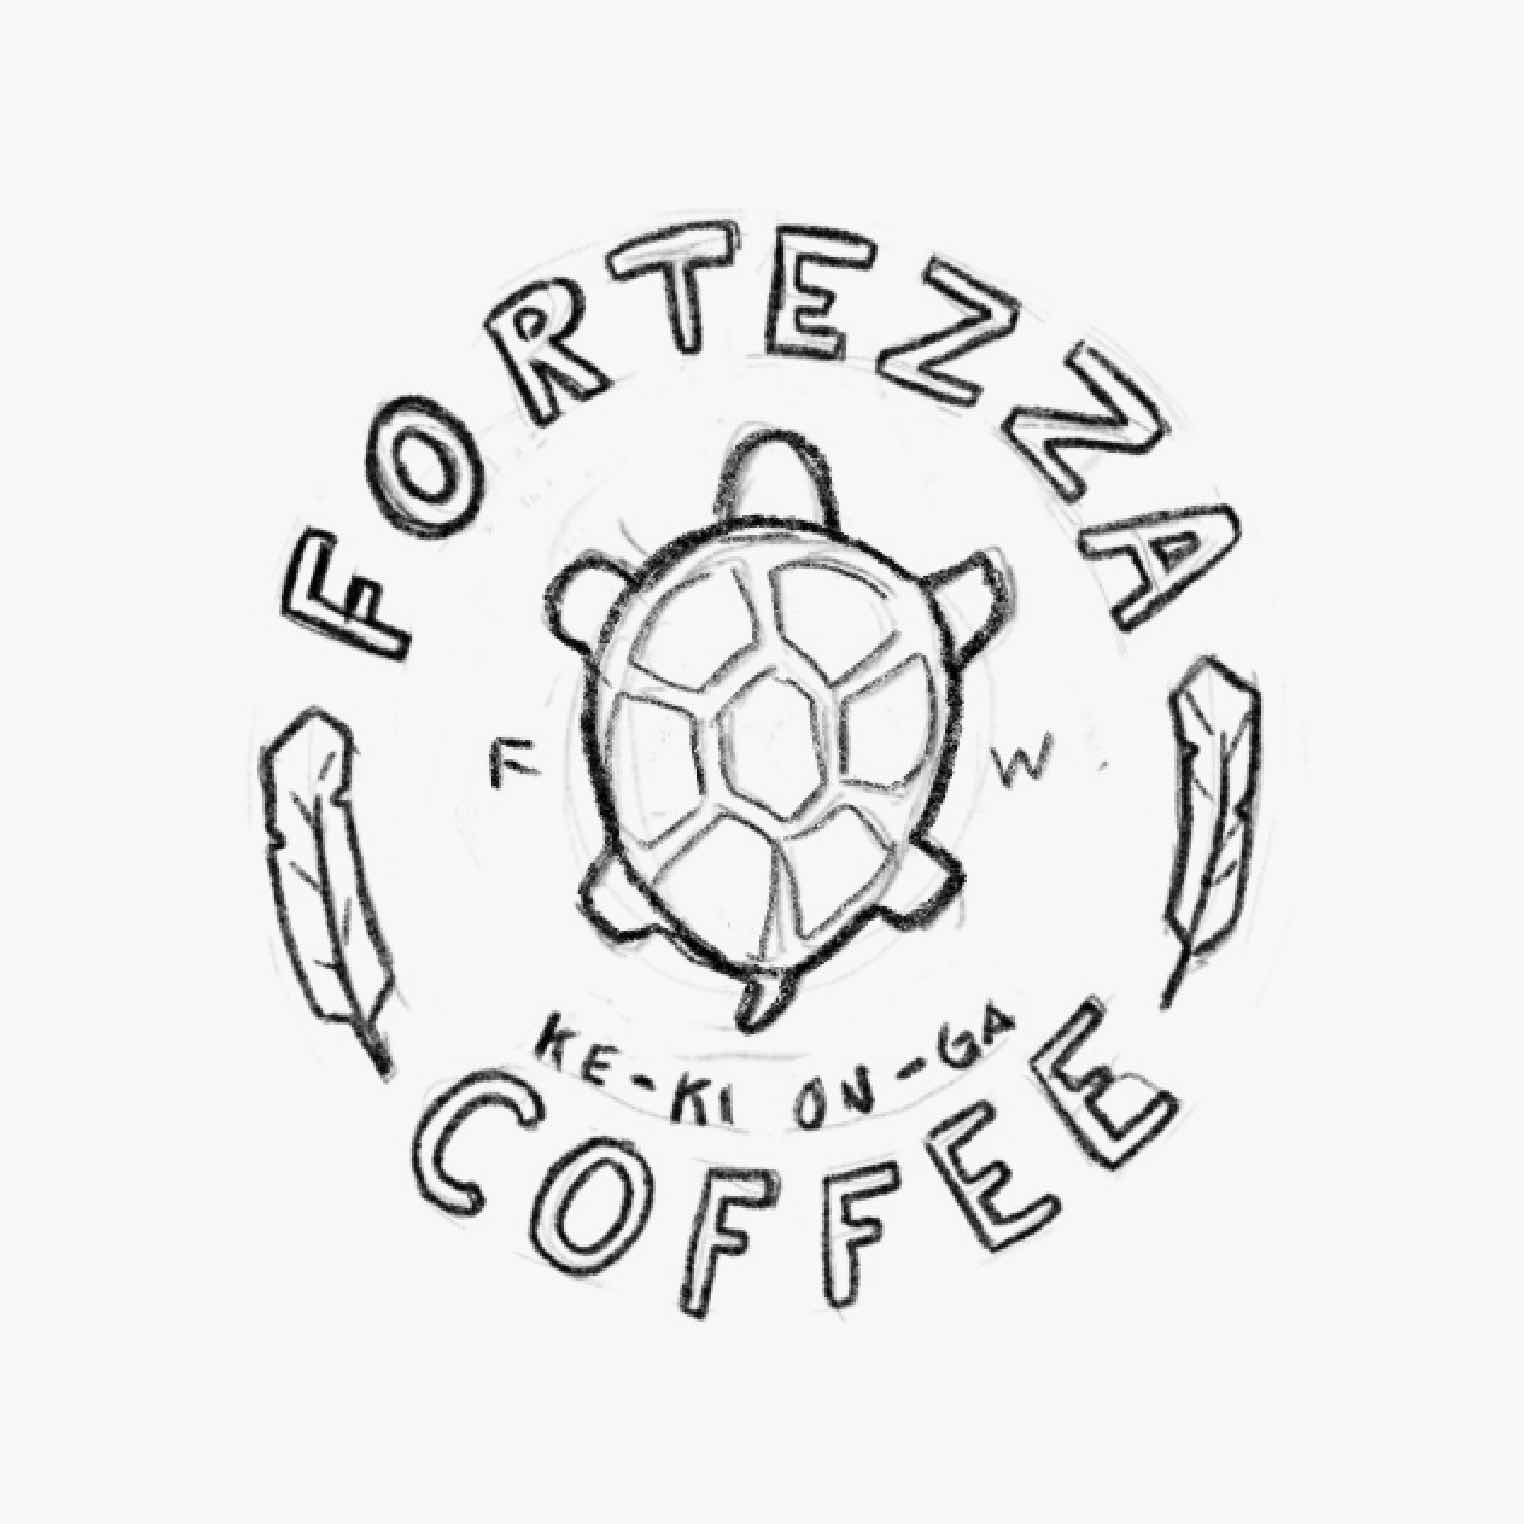 sketch of the fortezza logo